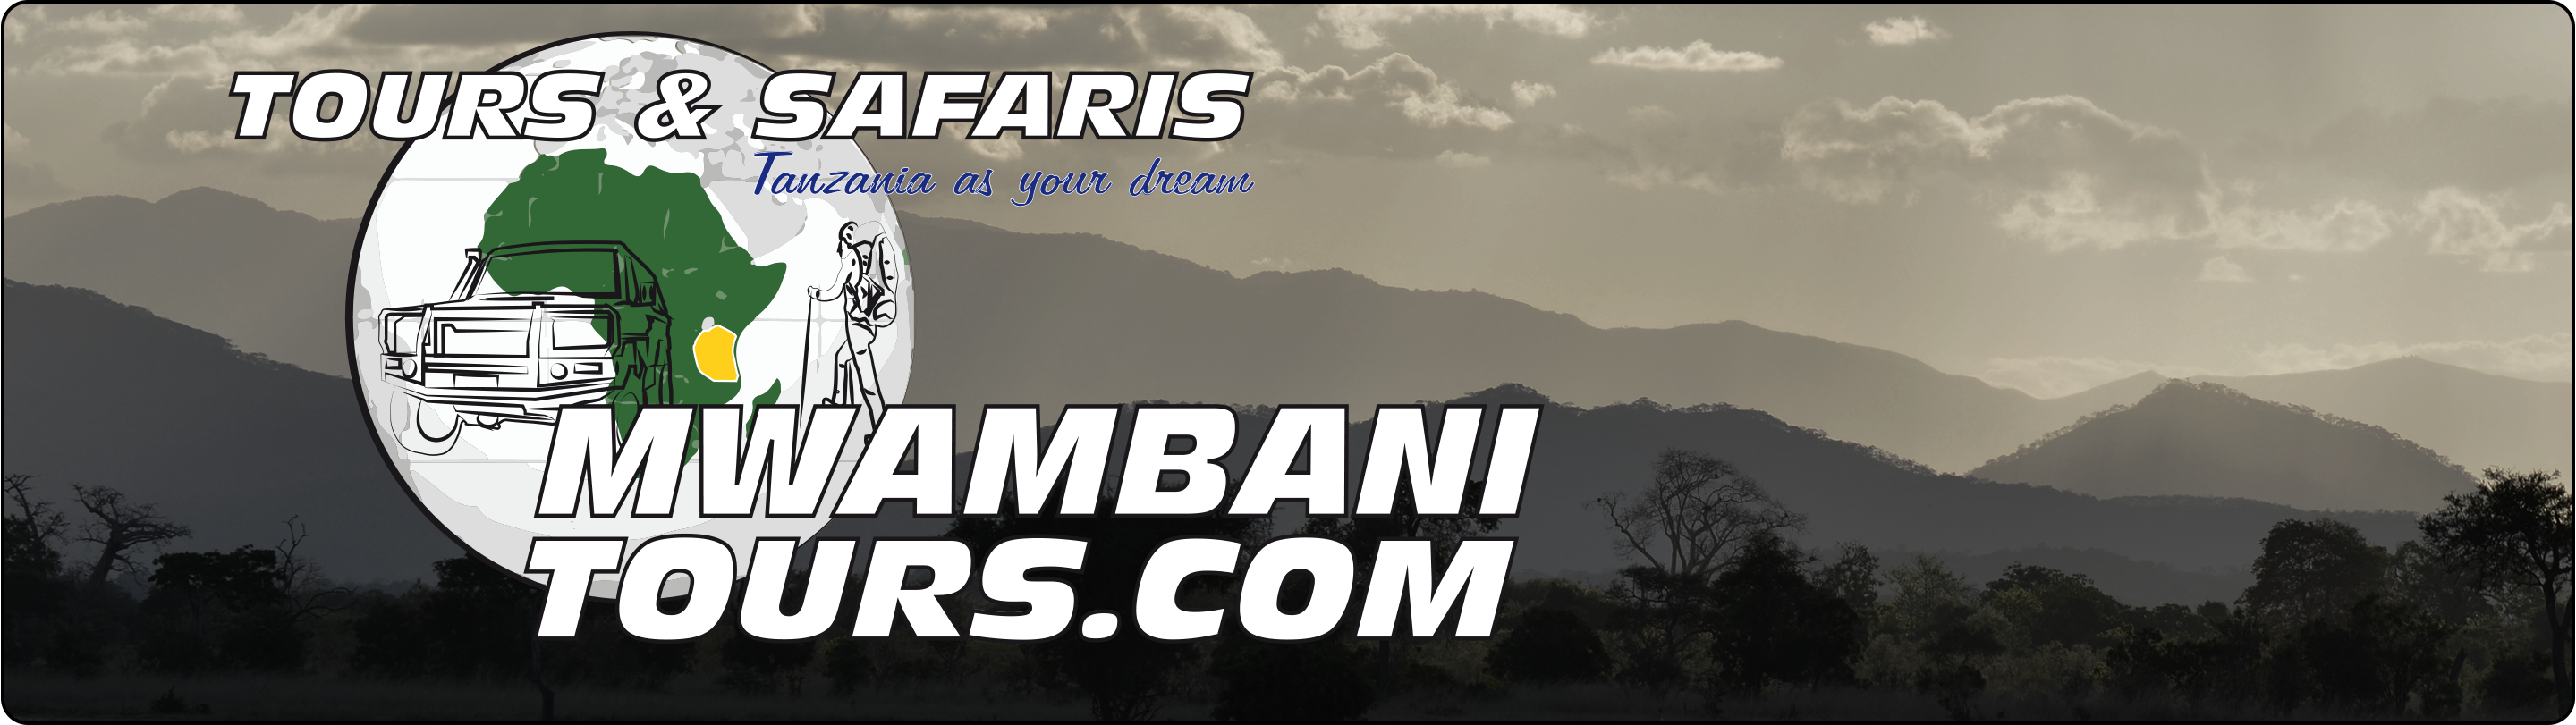 Mwambani tours & Safaris -- Tanzania as your dream